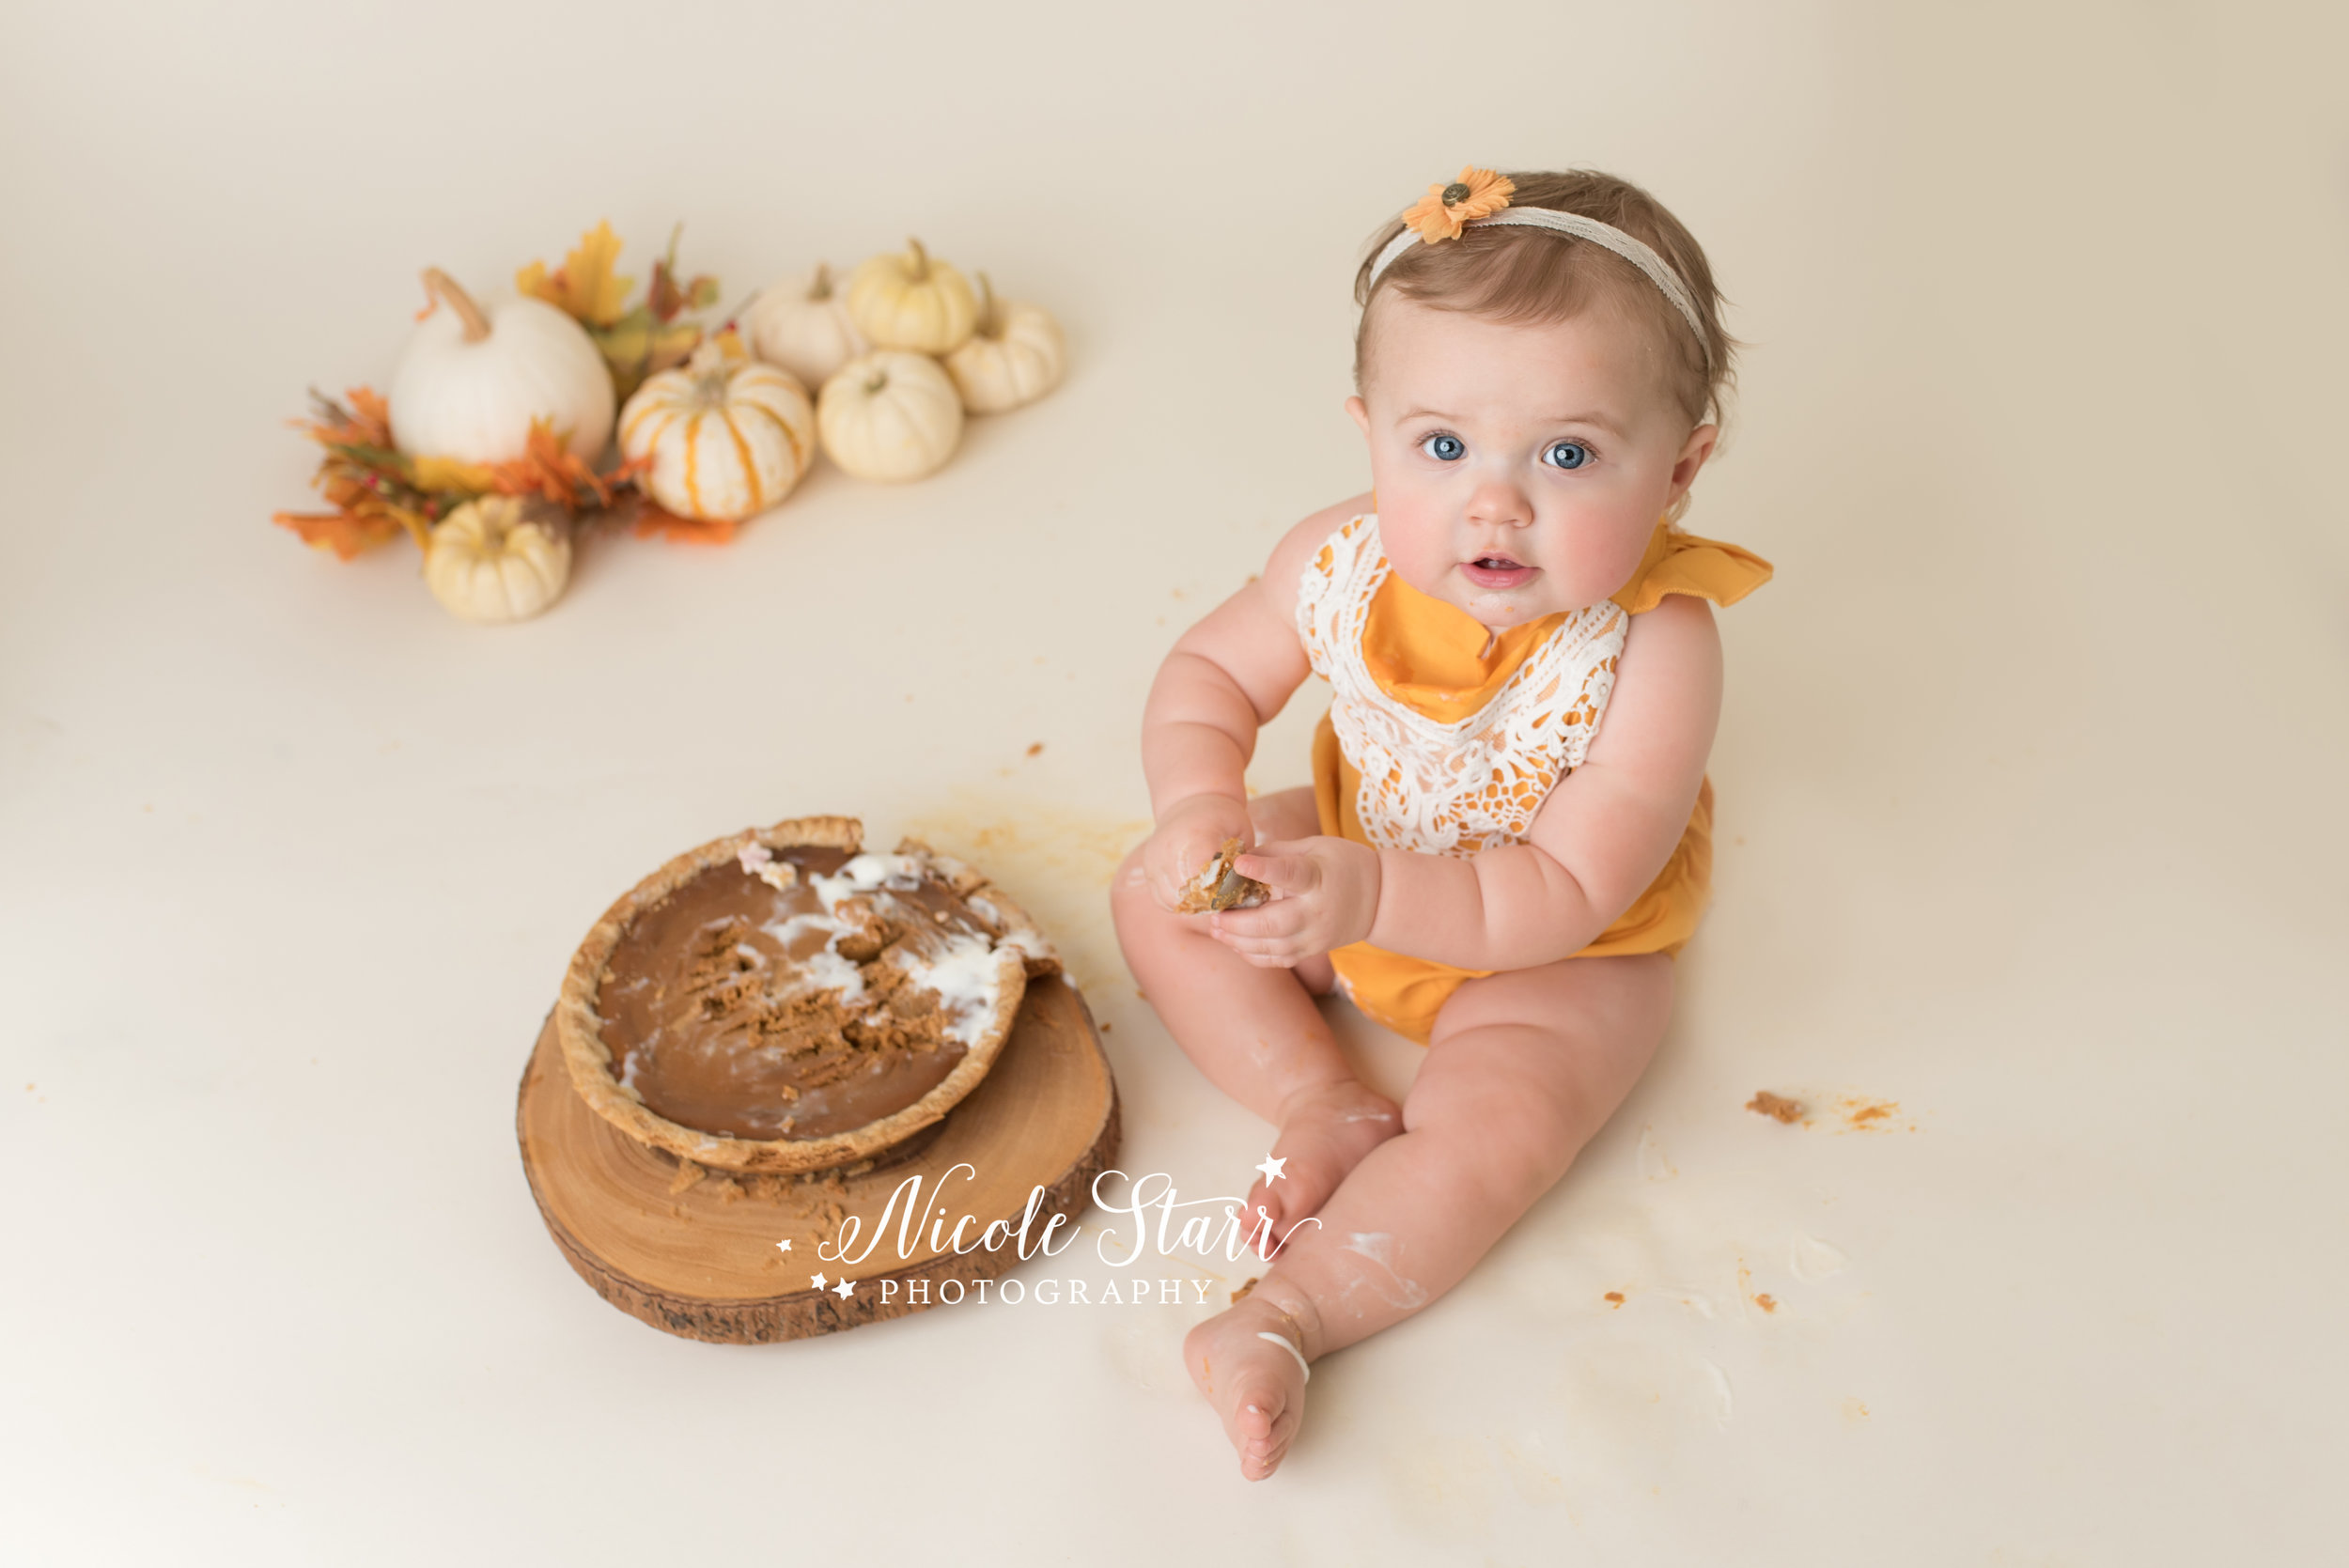 Nicole Starr Photography | Saratoga Springs Pumpkin Pie Smash Photographer | Boston Pumpkin Pie Smash Photographer | Saratoga Springs Baby Photographer | Boston Baby Photographer | pumpkin pie